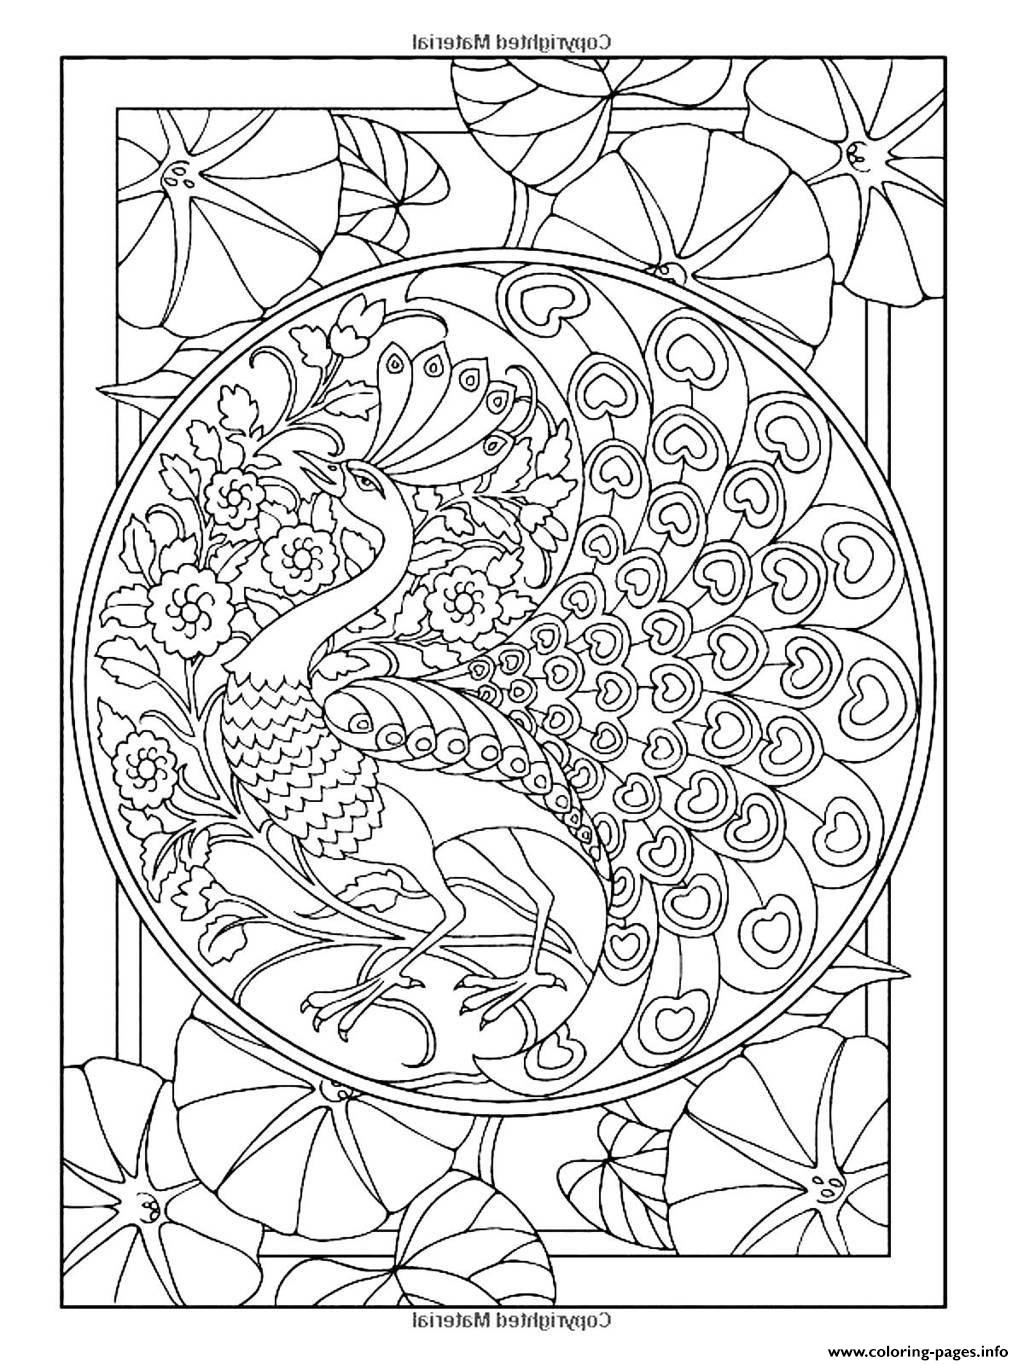 Cool Adult Coloring Pages  Cool Coloring Pages For Adults Peacock Coloring Home